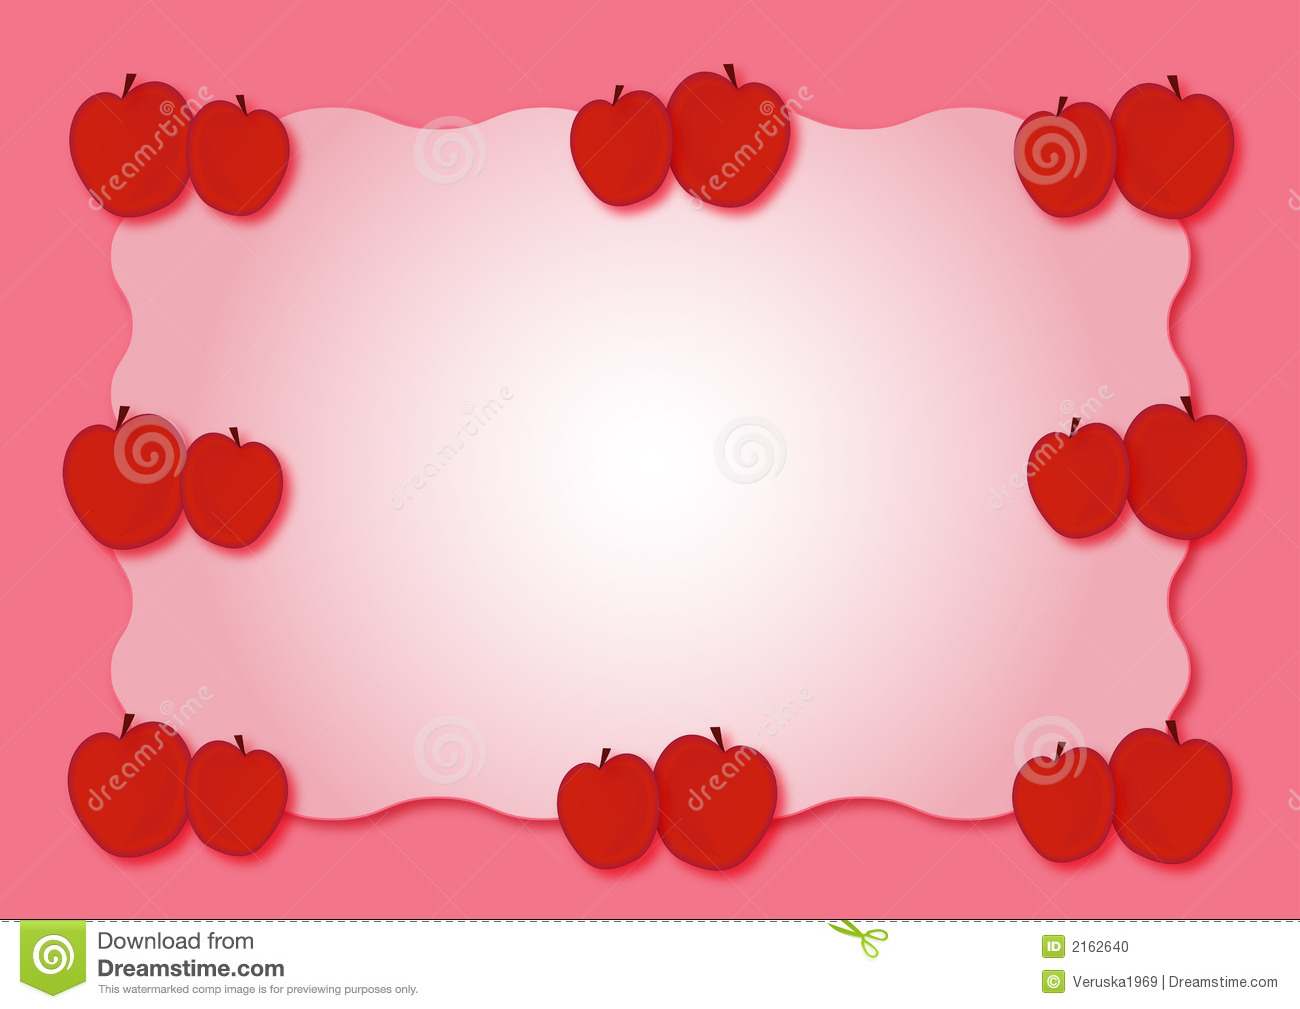 Apple - red fruits